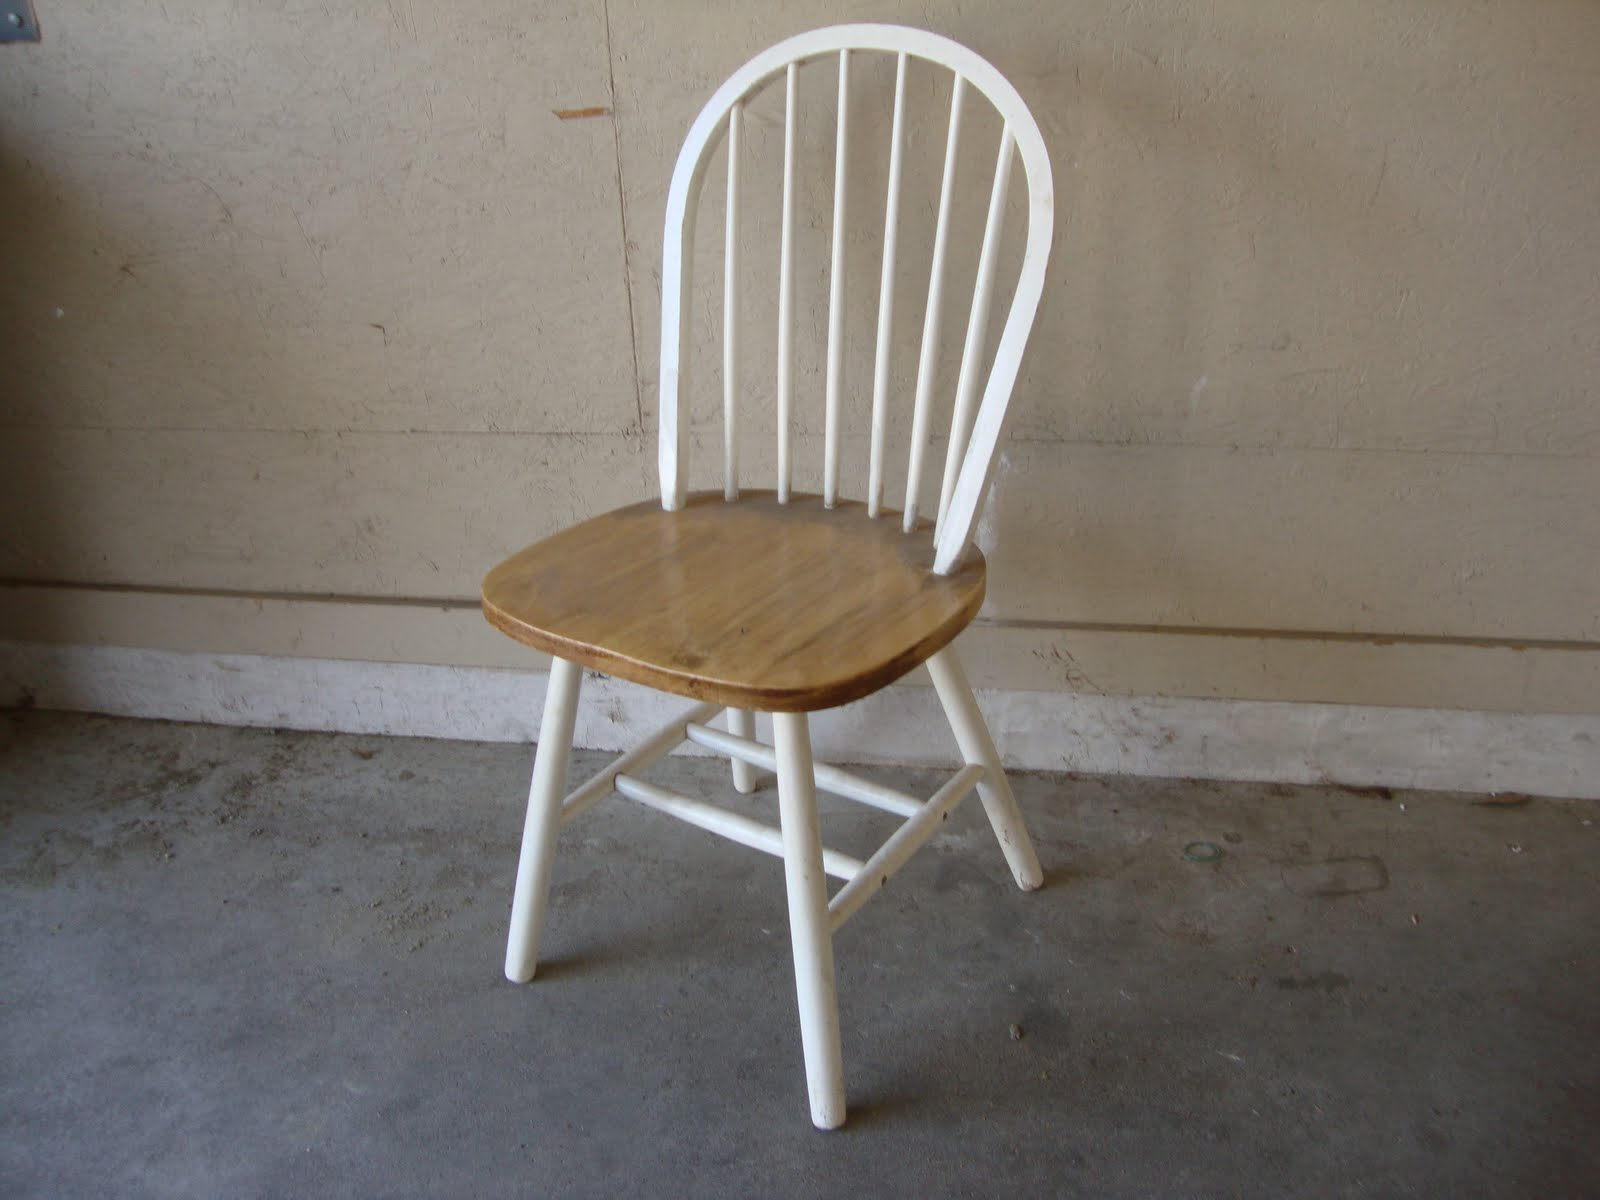 Farmhouse Chairs Chair Stools Wooden Amazing Grays Painted